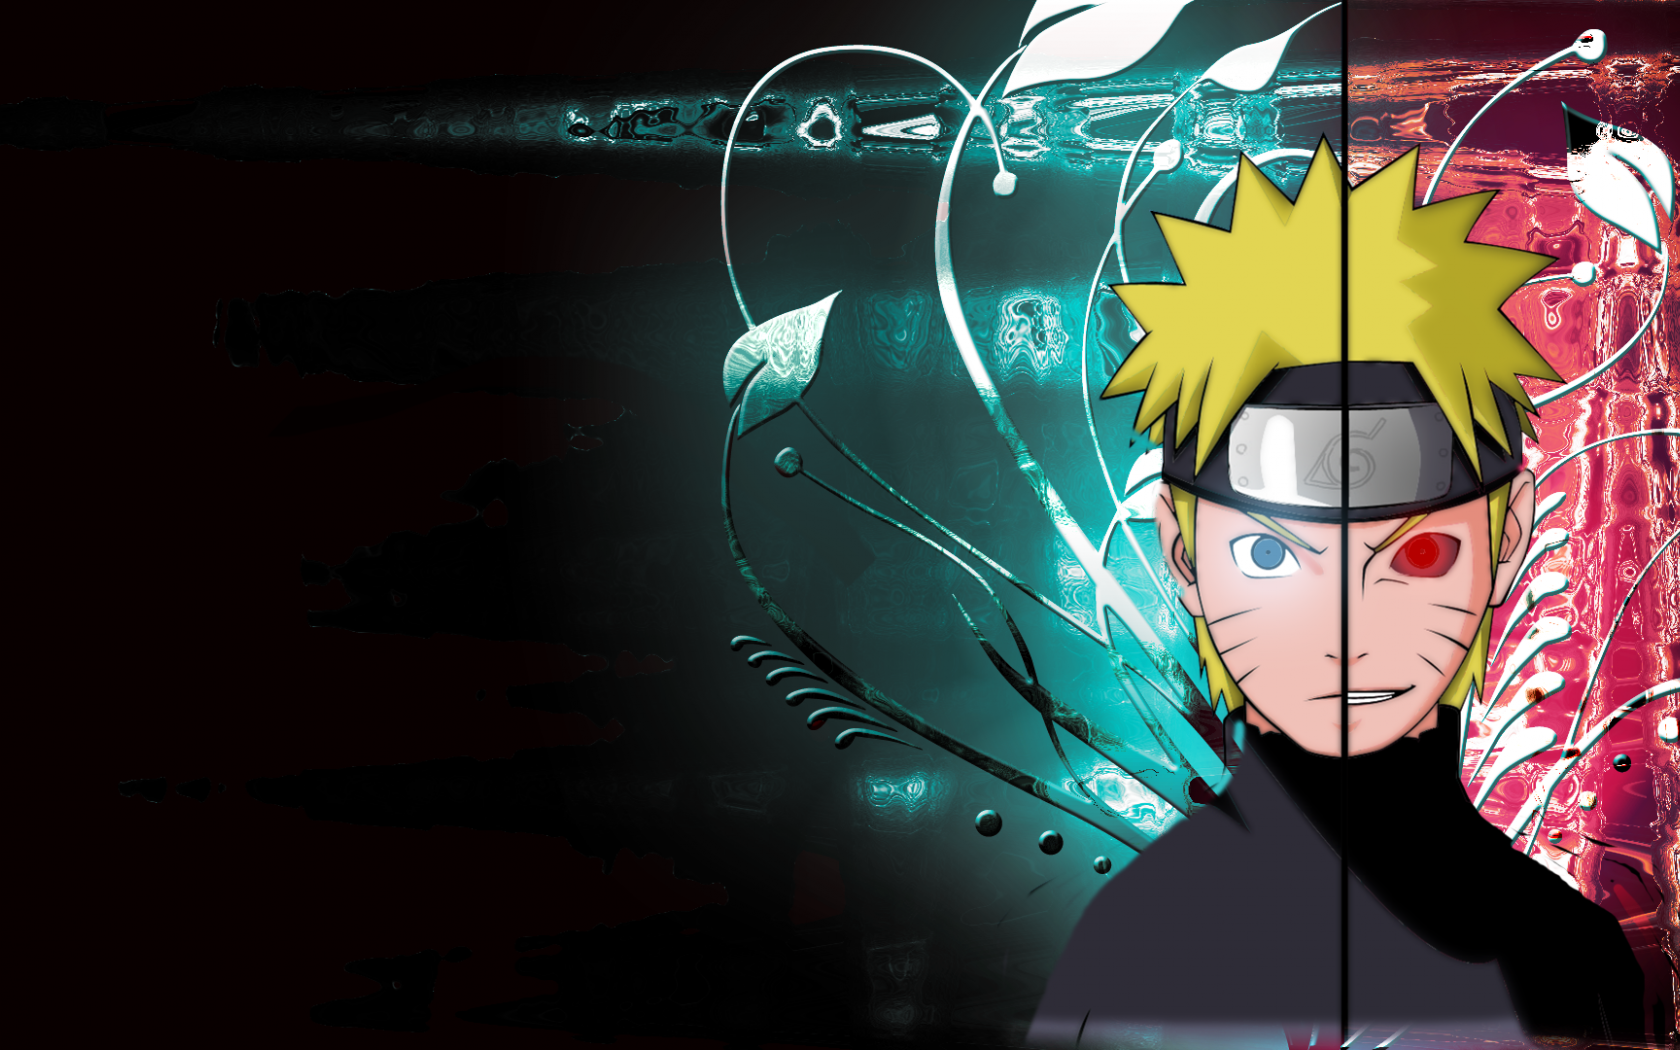 Free Download Naruto Split Personalities Wallpaper 1080p By Iliekmudkipz101 On 1920x1080 For Your Desktop Mobile Tablet Explore 49 Naruto 1080p Wallpaper Hd Naruto Wallpaper Cool Naruto Wallpaper Download Naruto Wallpapers